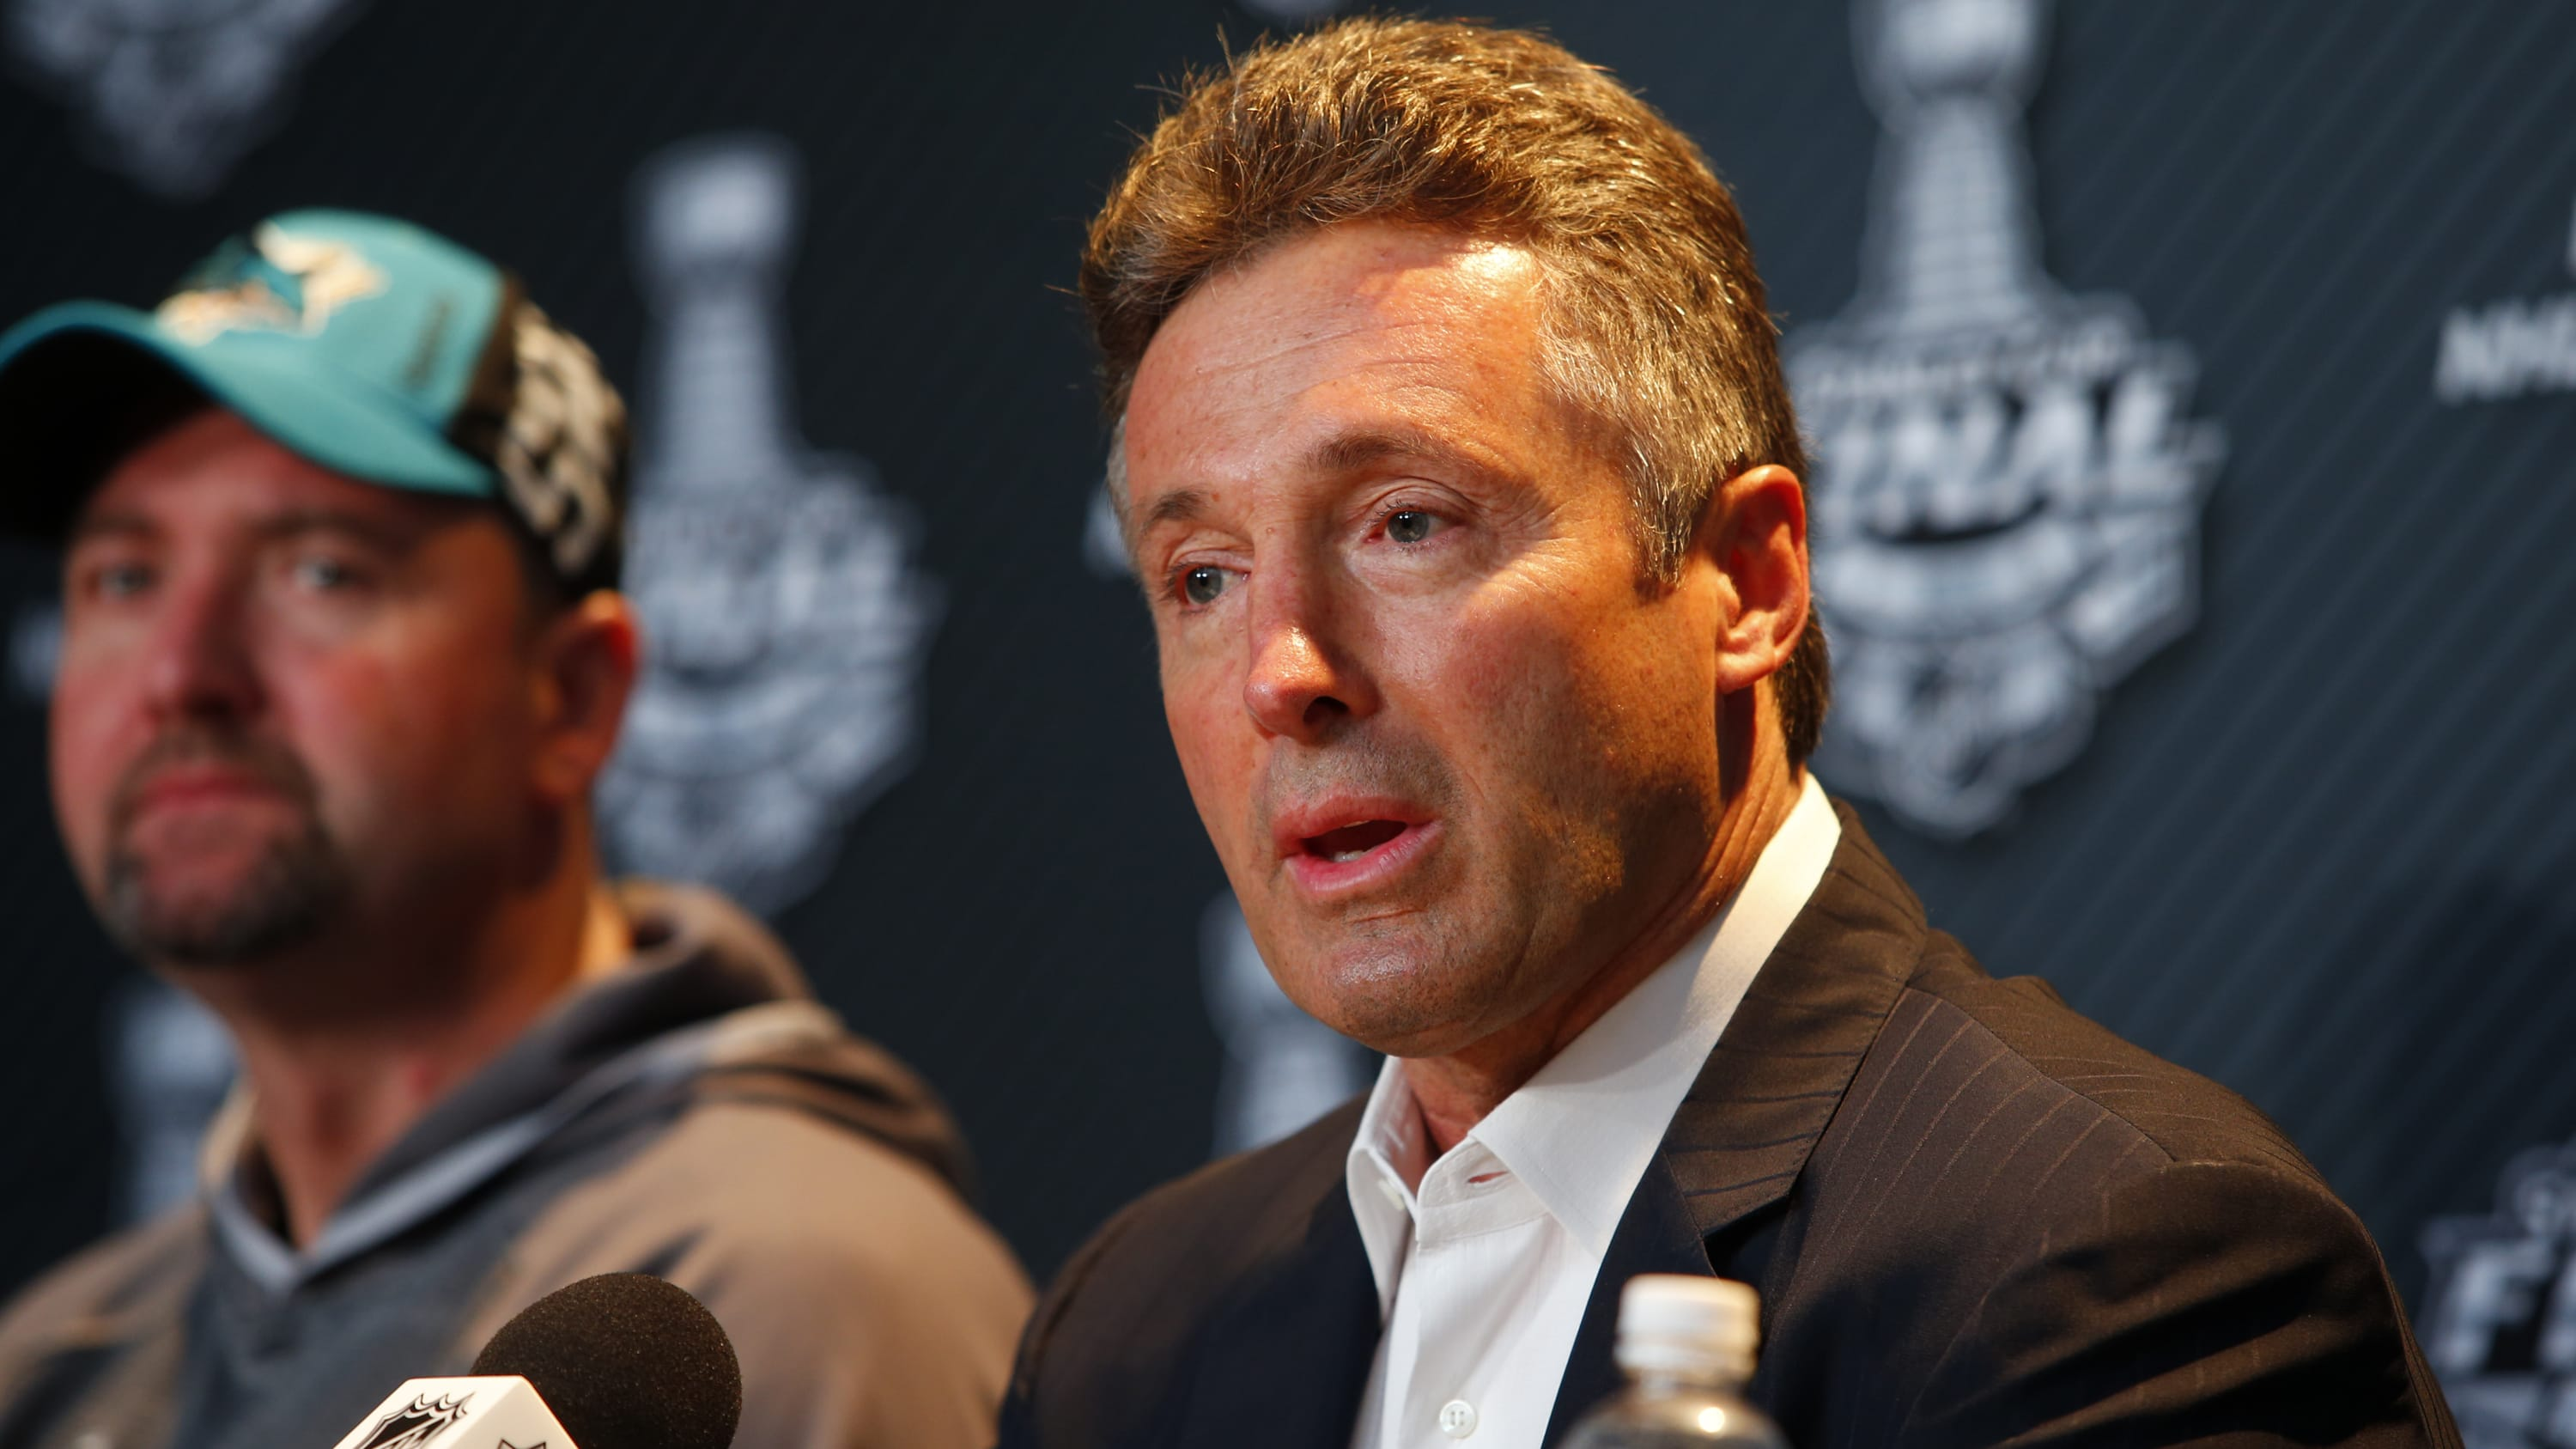 PITTSBURGH, PA - MAY 29: General manager Doug Wilson of the San Jose Sharks addresses the media during the NHL Stanley Cup Final Media Day at Consol Energy Center on May 29, 2016 in Pittsburgh, Pennsylvania. (Photo by Justin K. Aller/Getty Images)